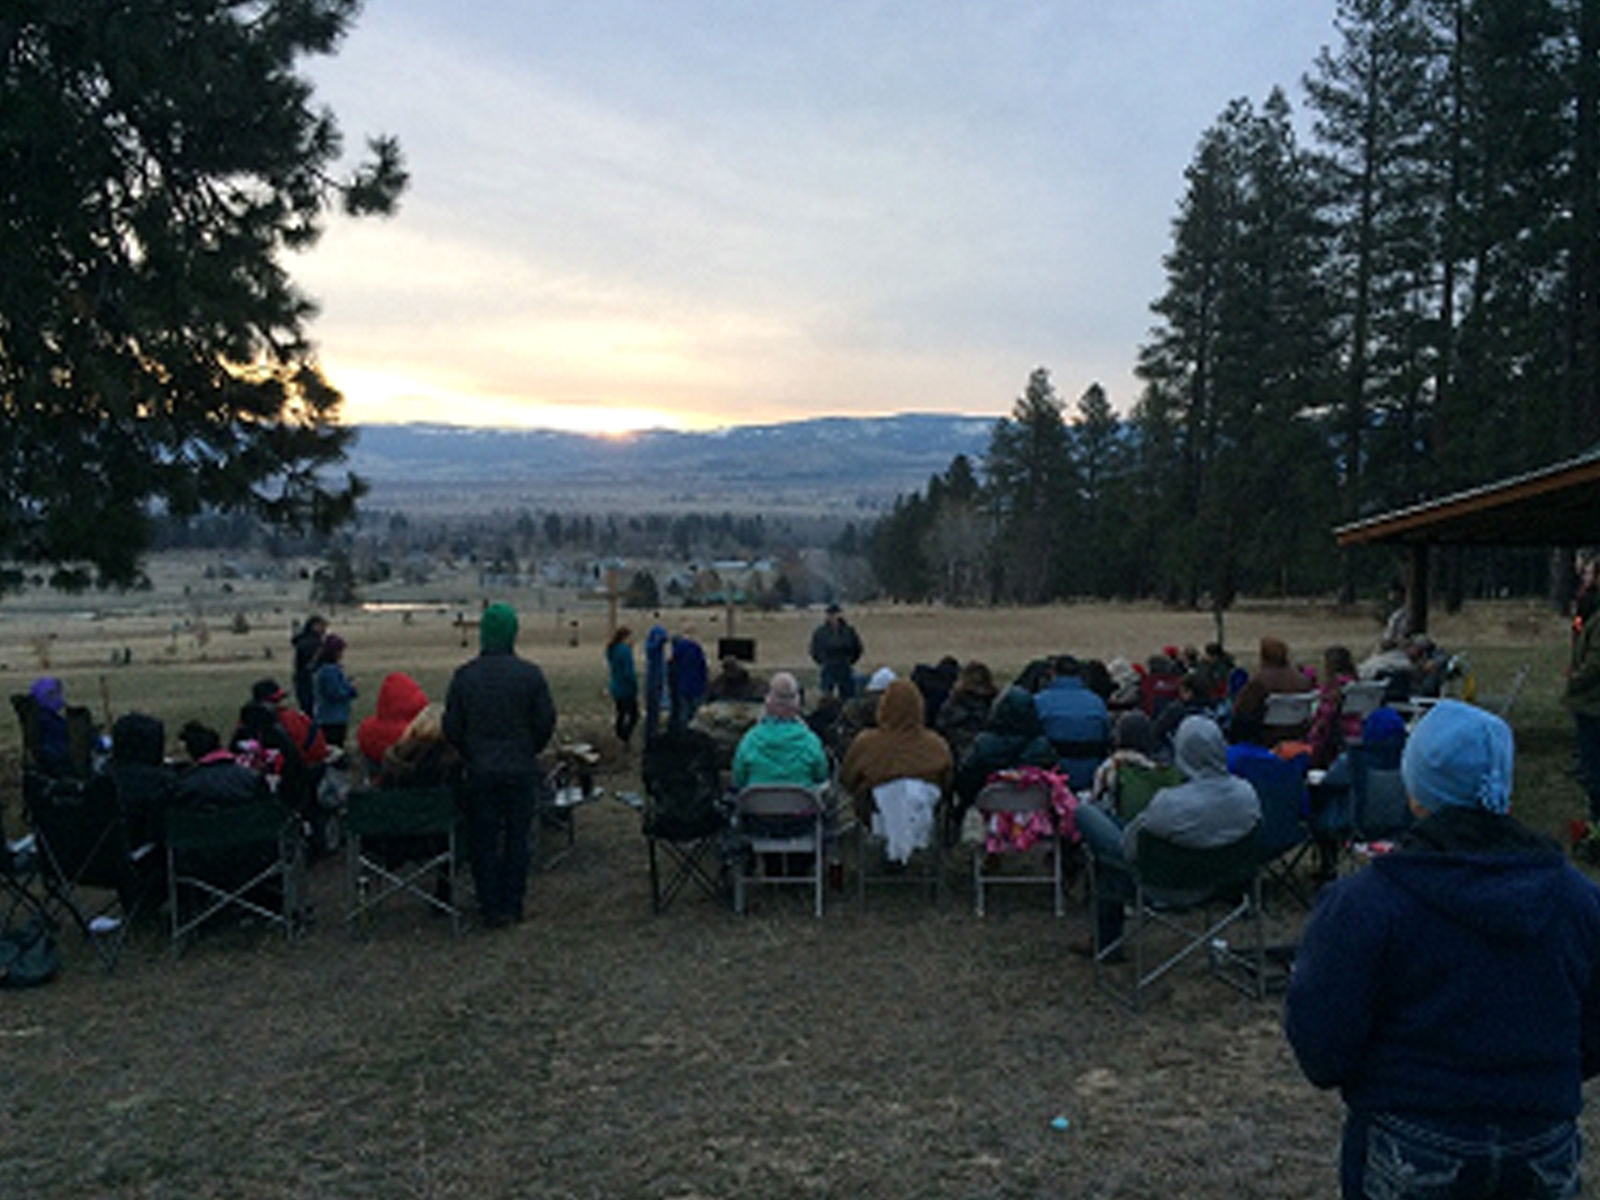 Easter in Montana, 2018